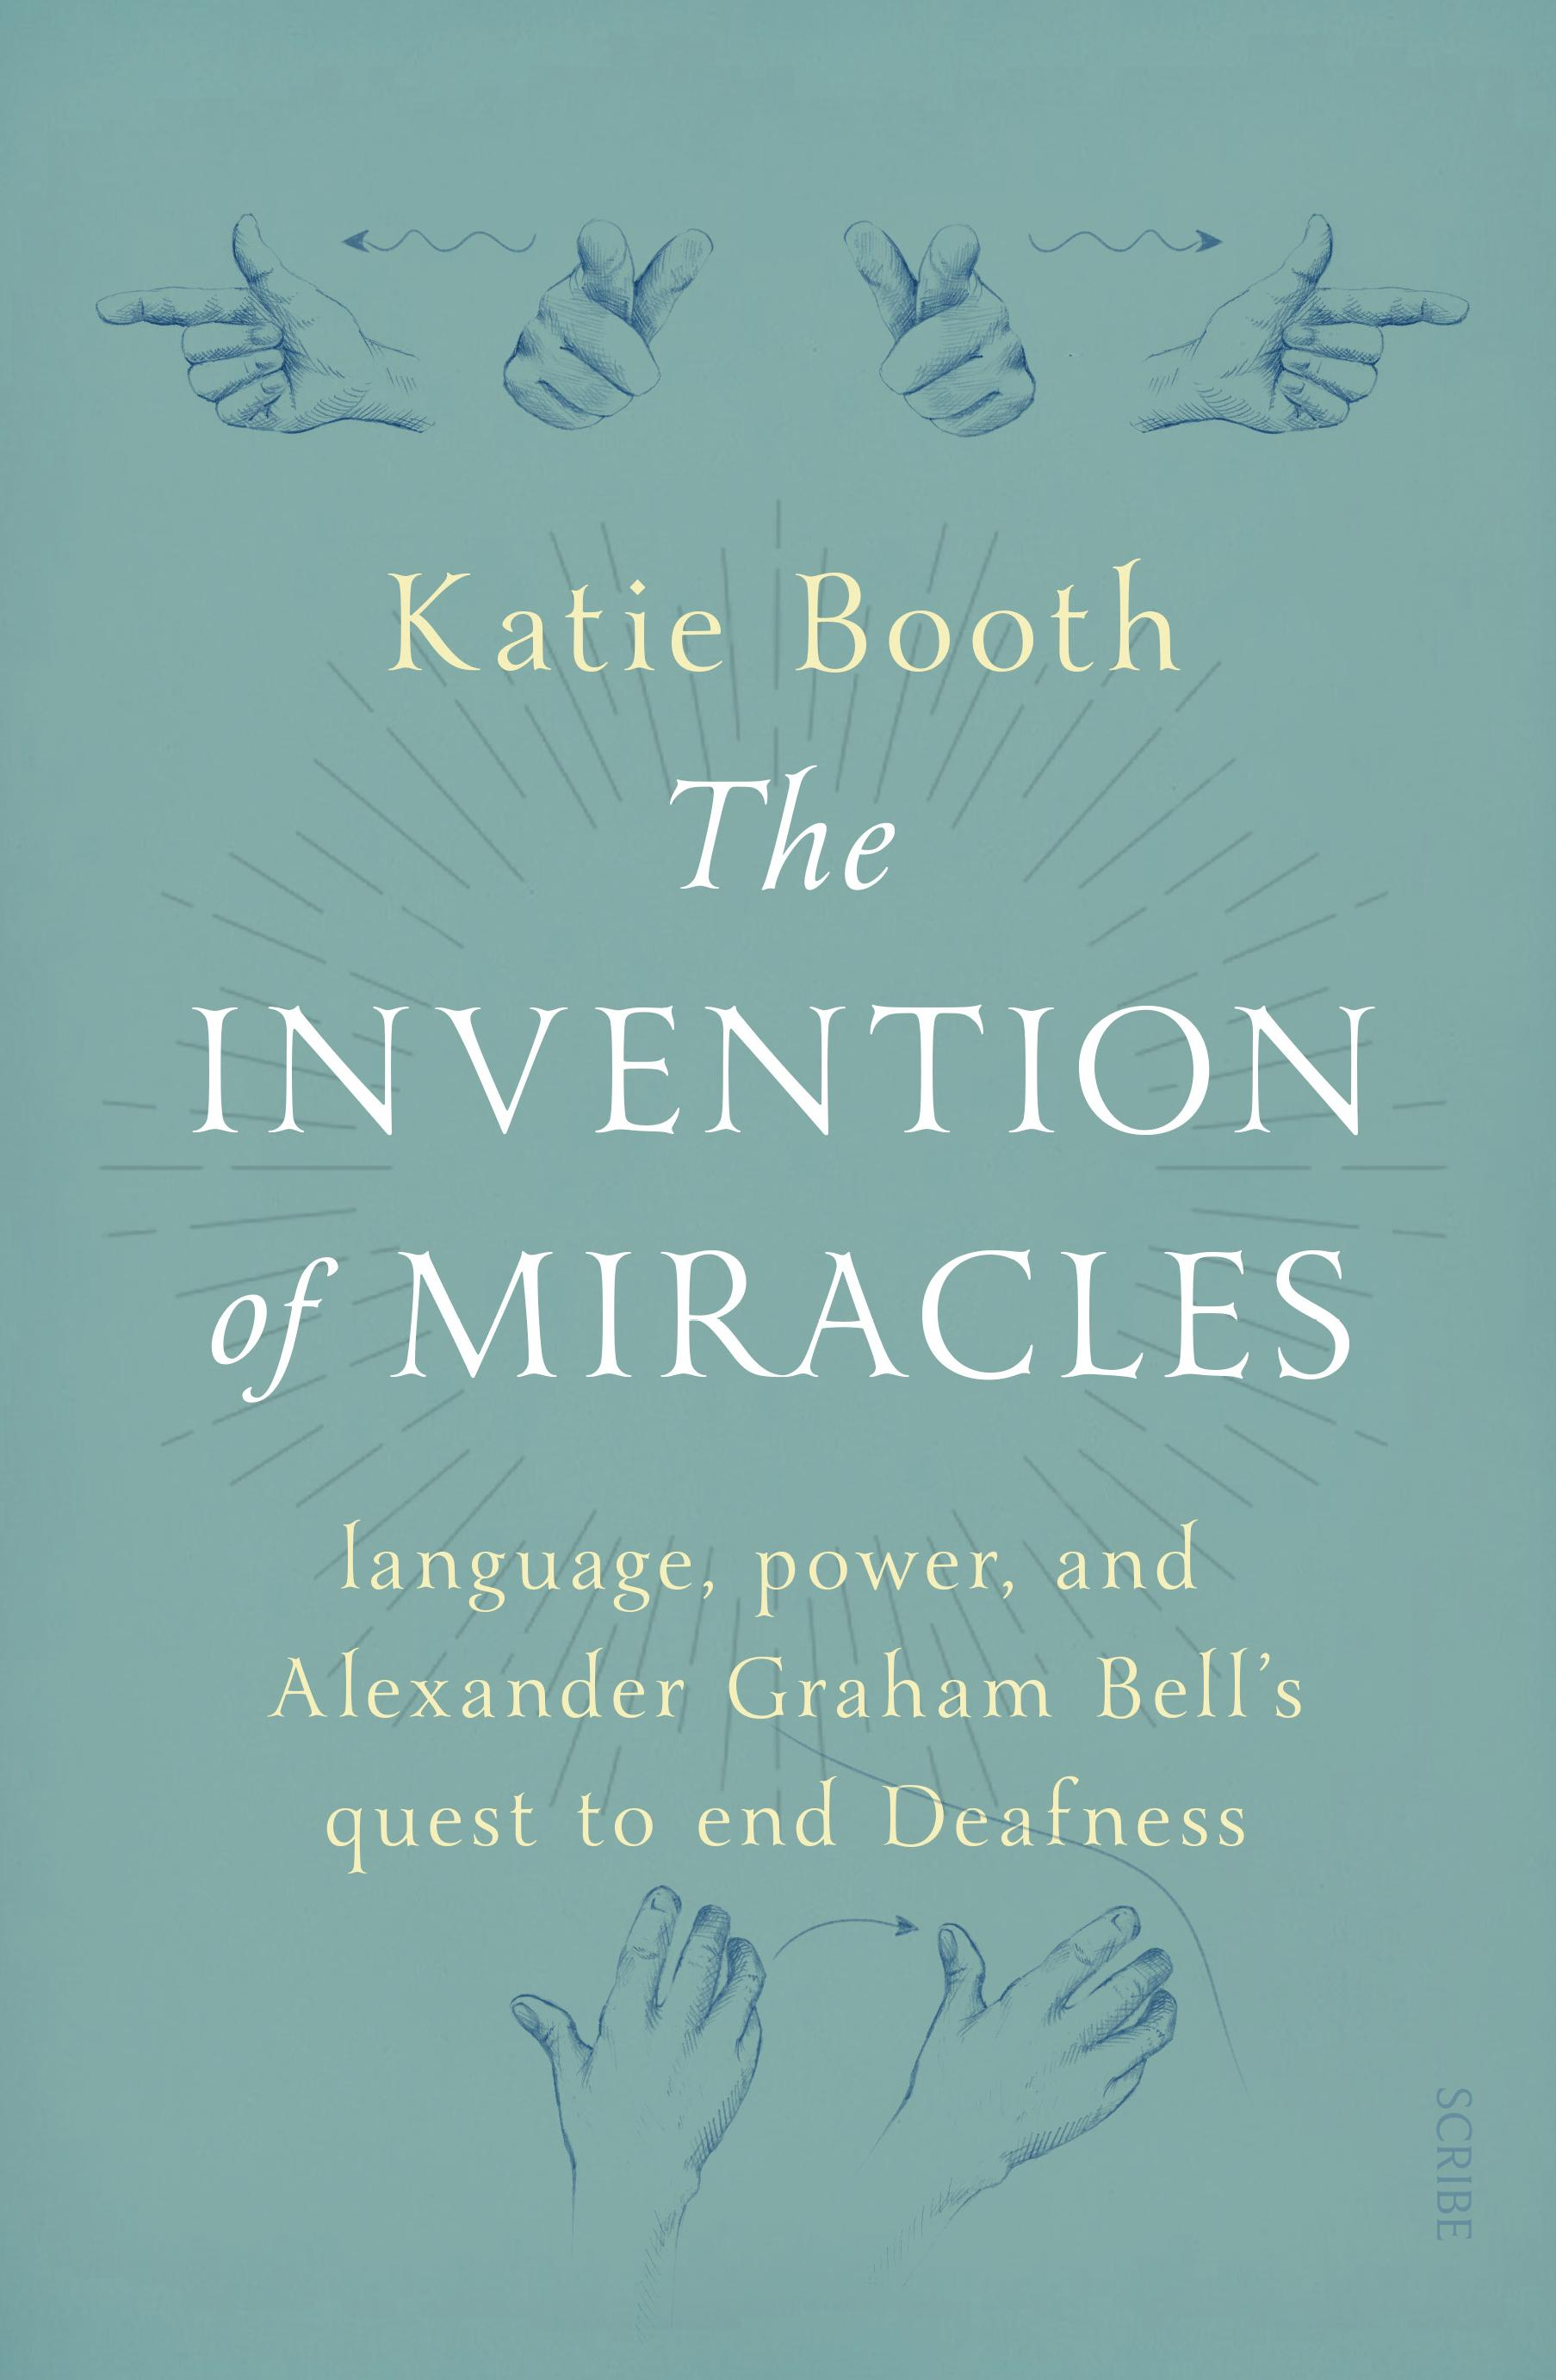 The InventionofMiracles